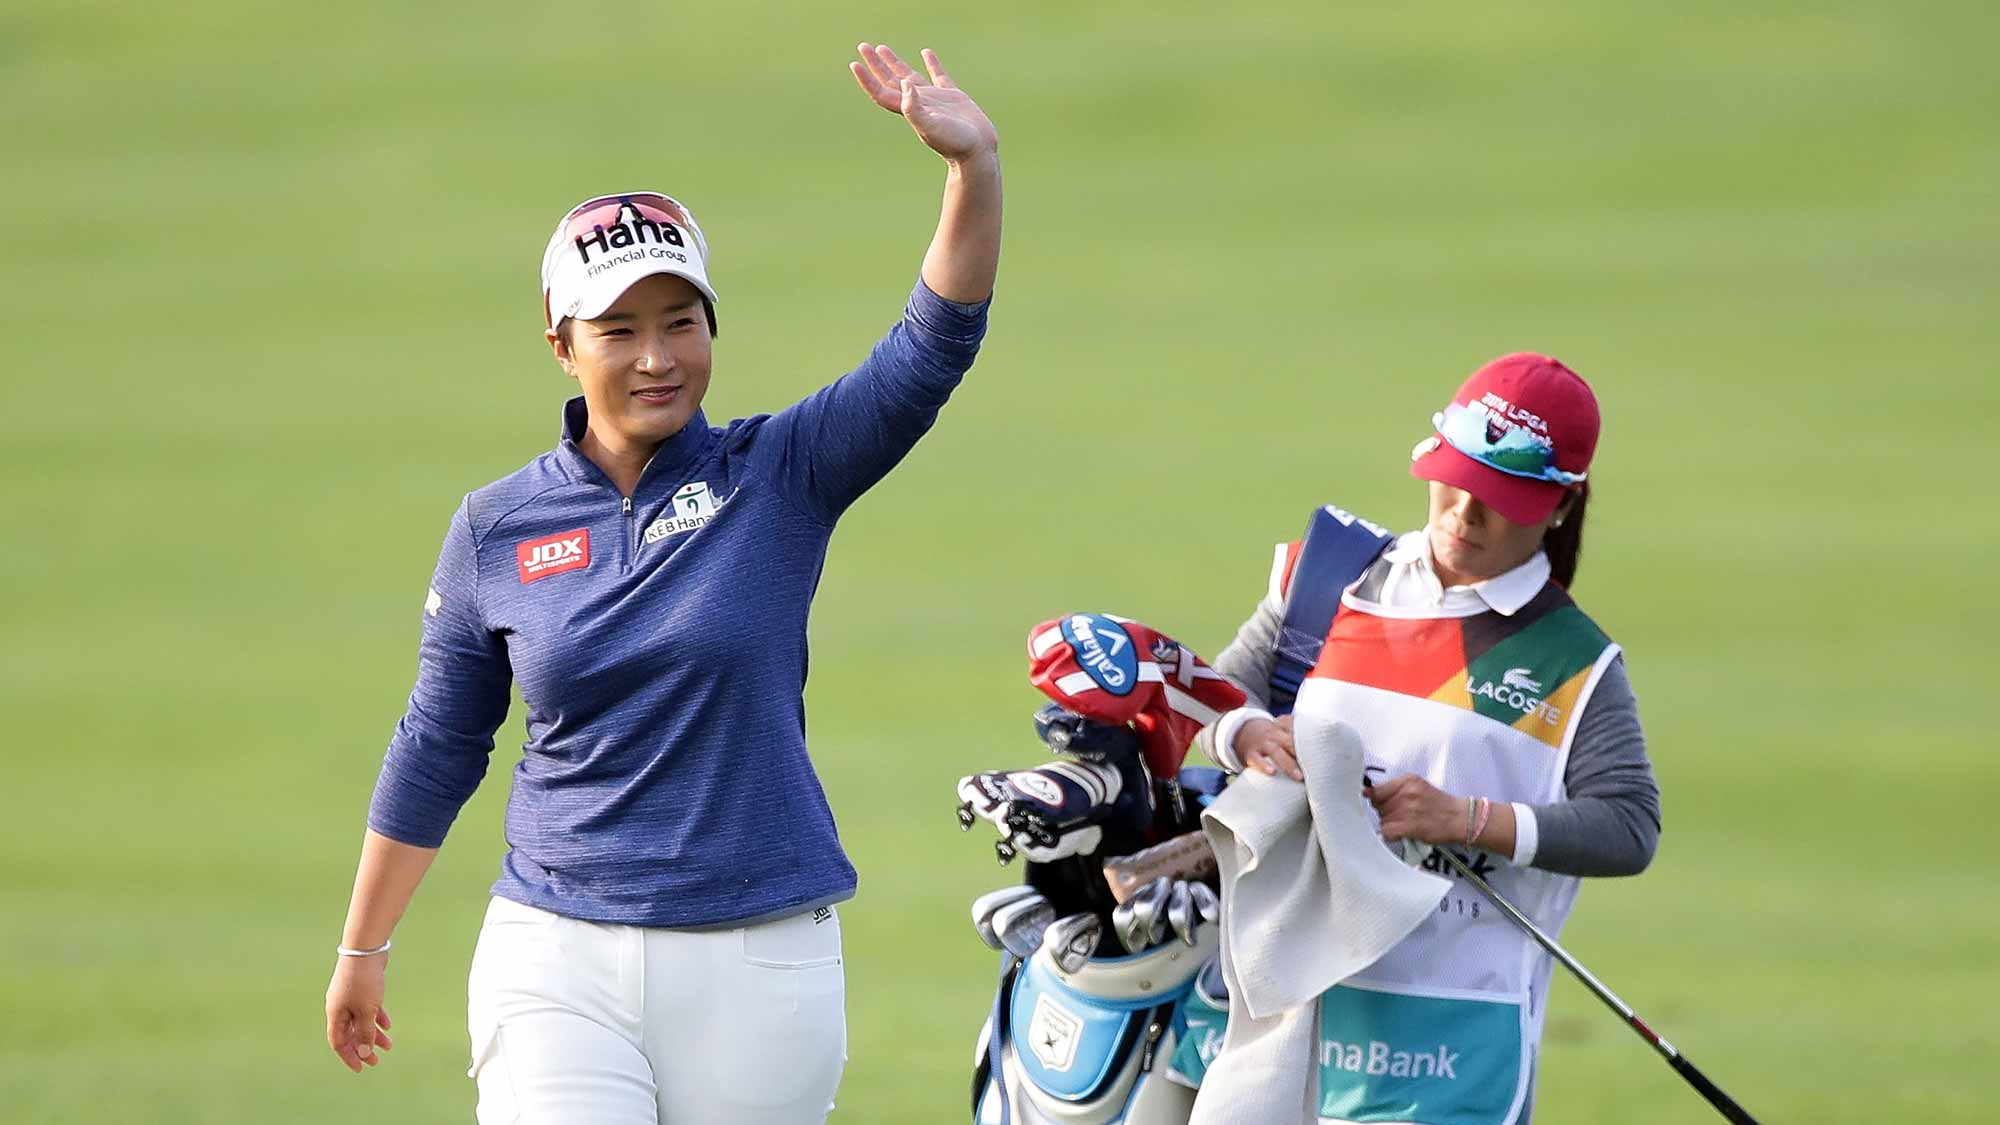 Se-Ri Pak of South Korea moves on the 18th hole during the first round of the LPGA KEB-Hana Bank Championship at the Sky 72 Golf Club Ocean Course